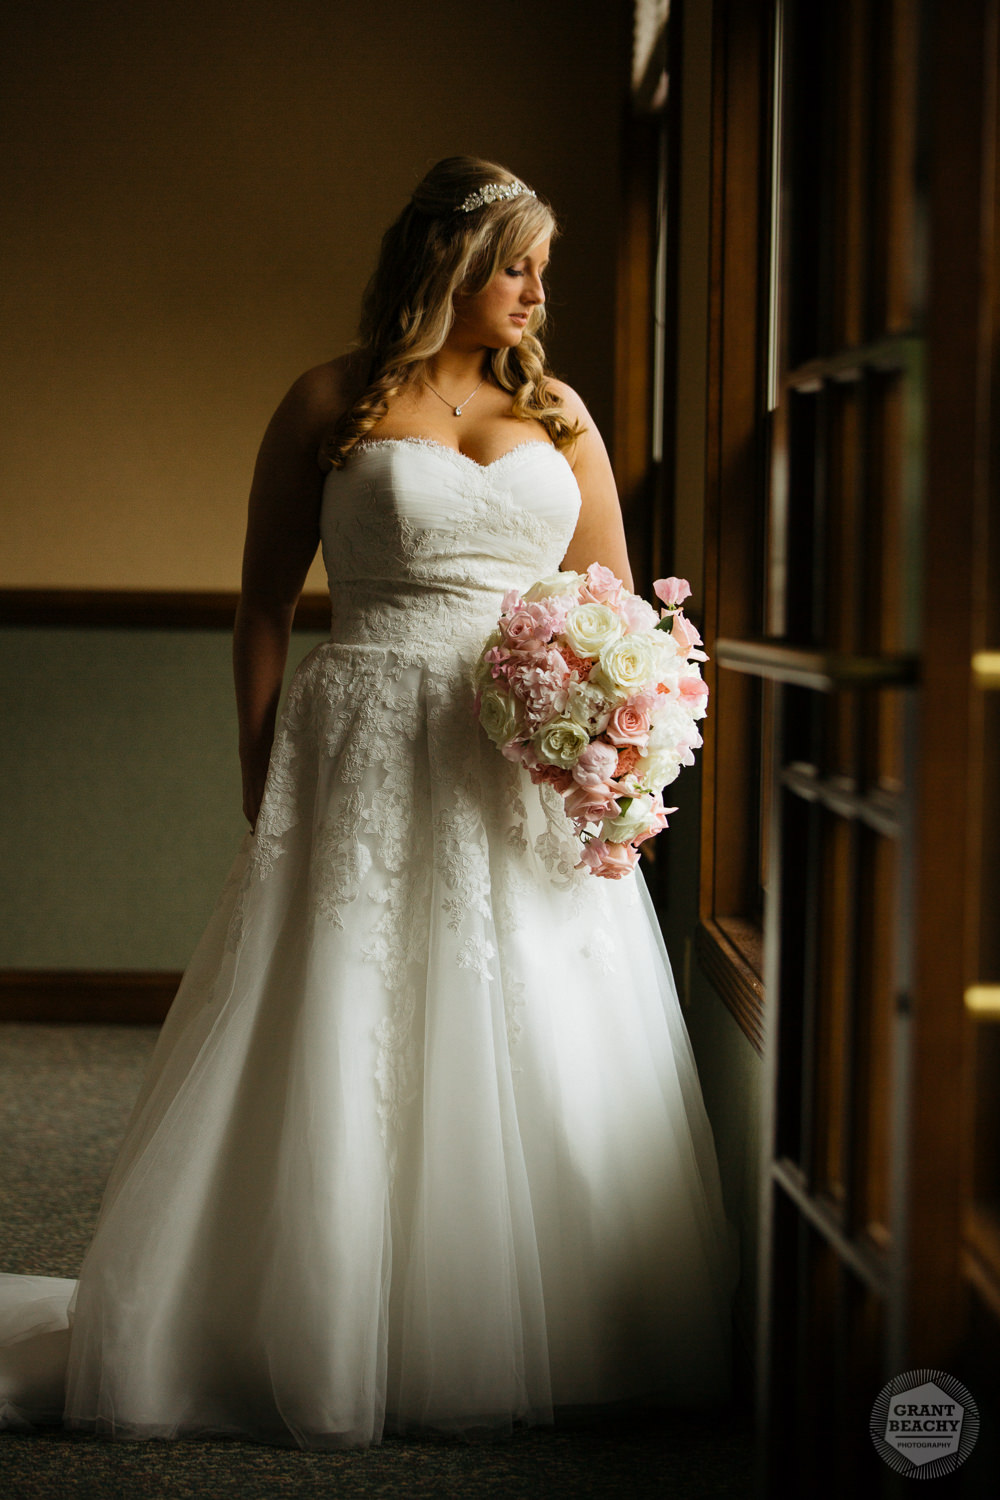 Grant Beachy wedding photography southbend goshen chicago-28.jpg